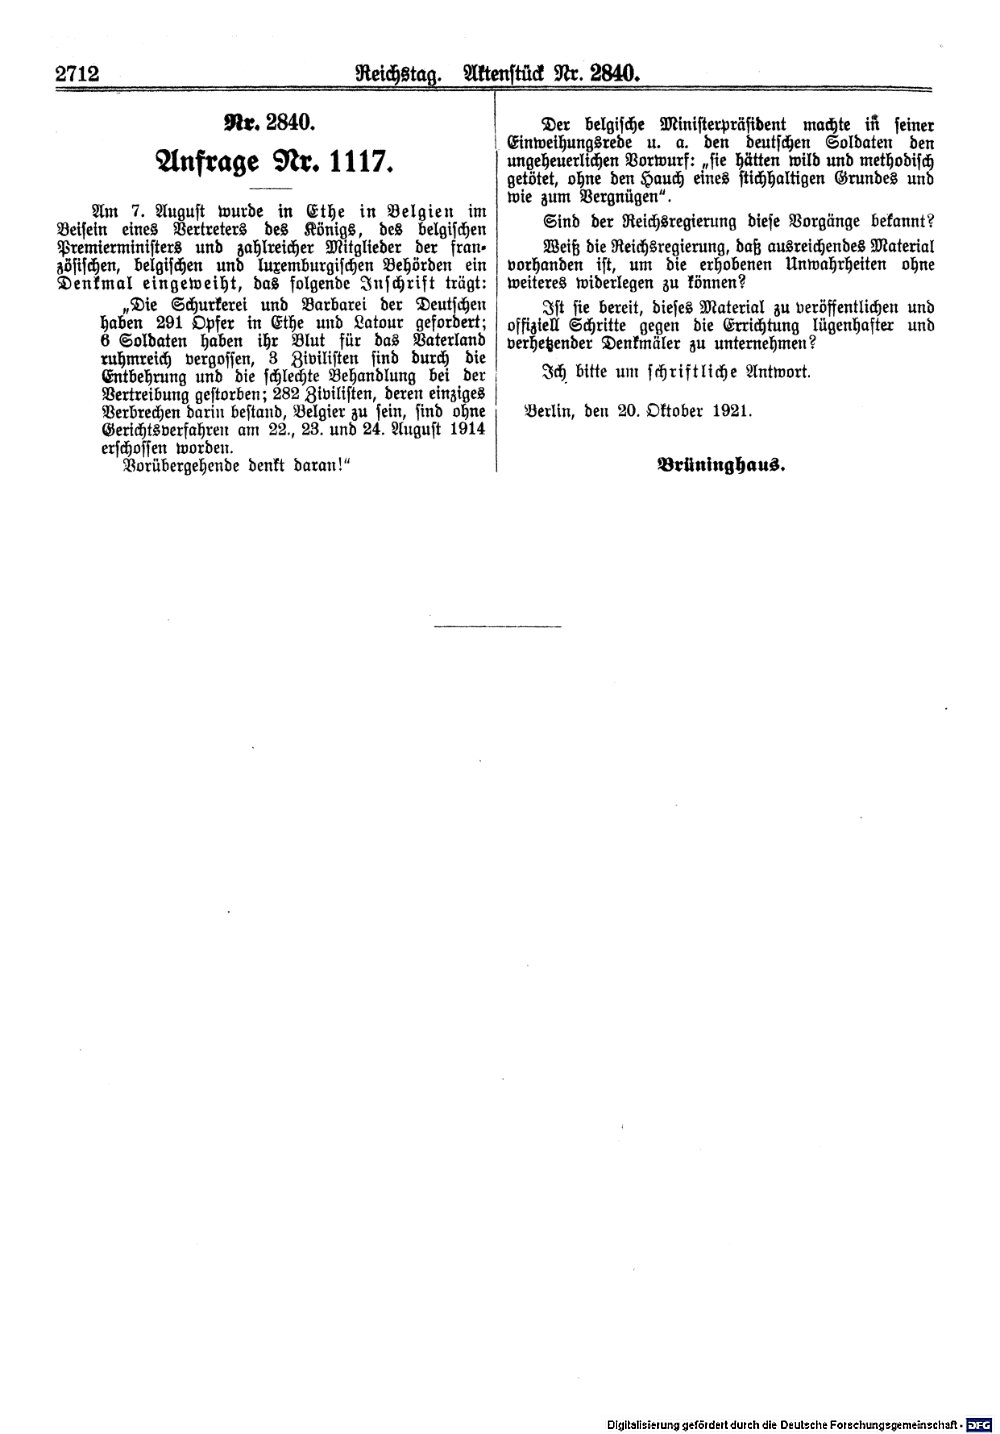 Scan of page 2712